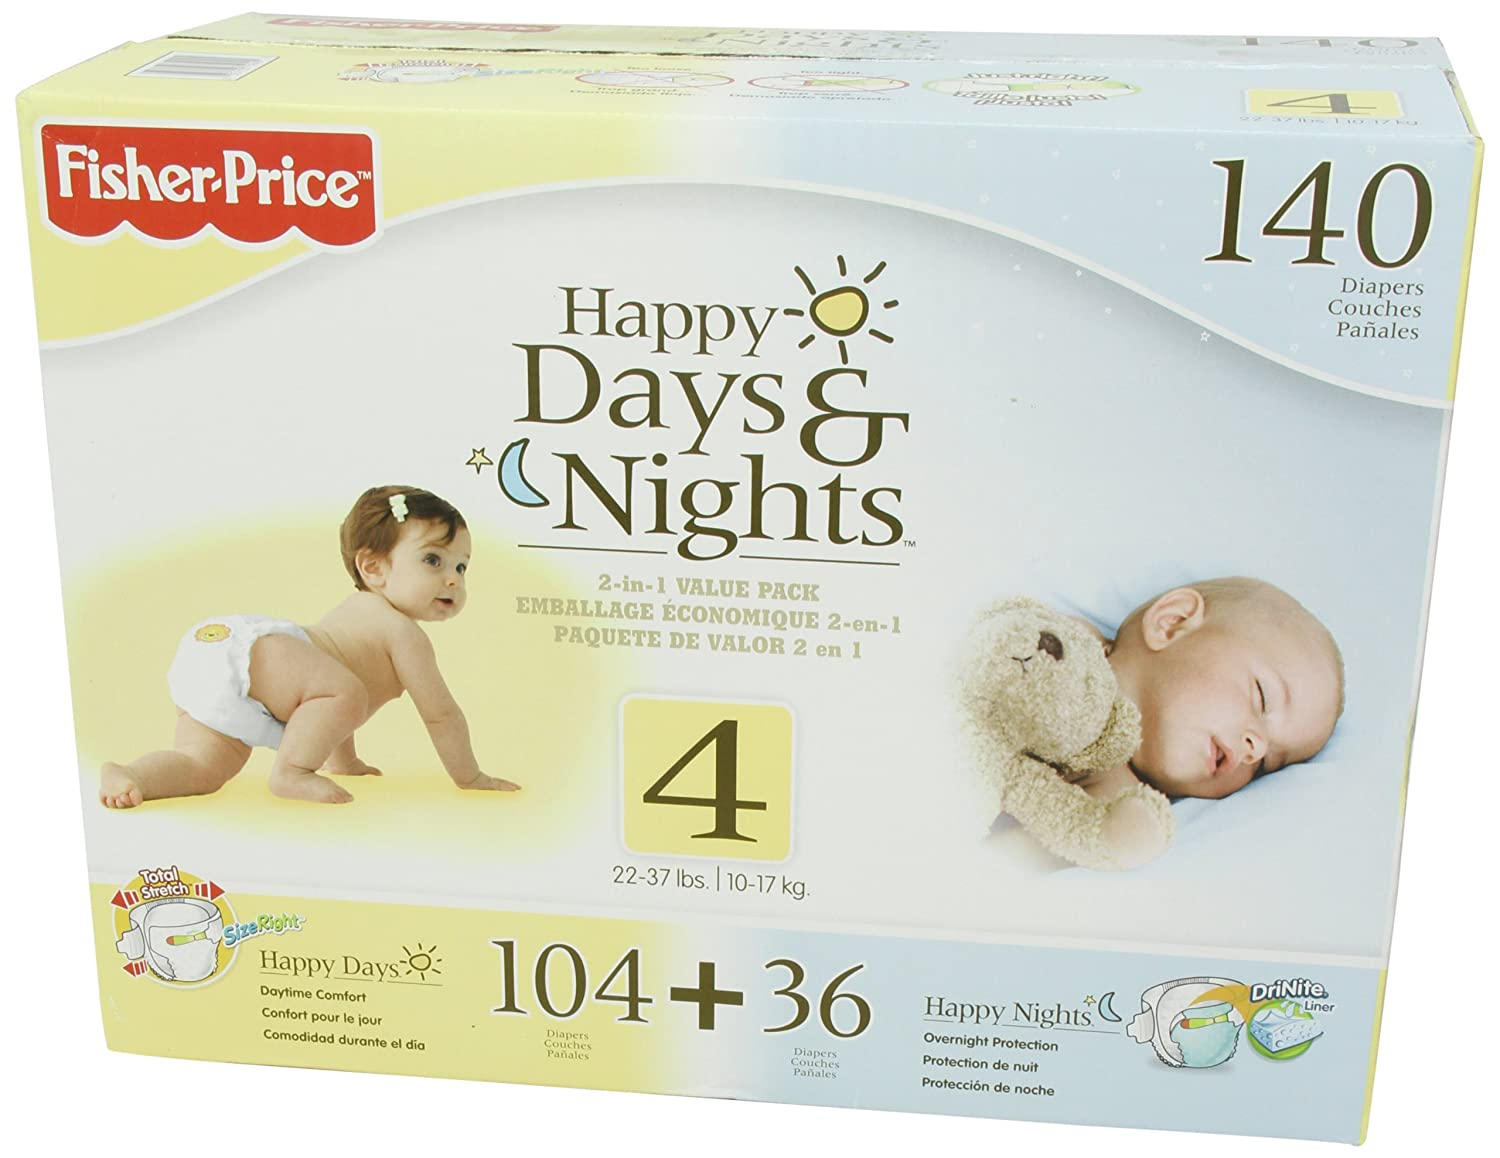 Amazon.com: Fisher Price Happy Day and Night Baby Diapers Size 4, 140 Count: Health & Personal Care